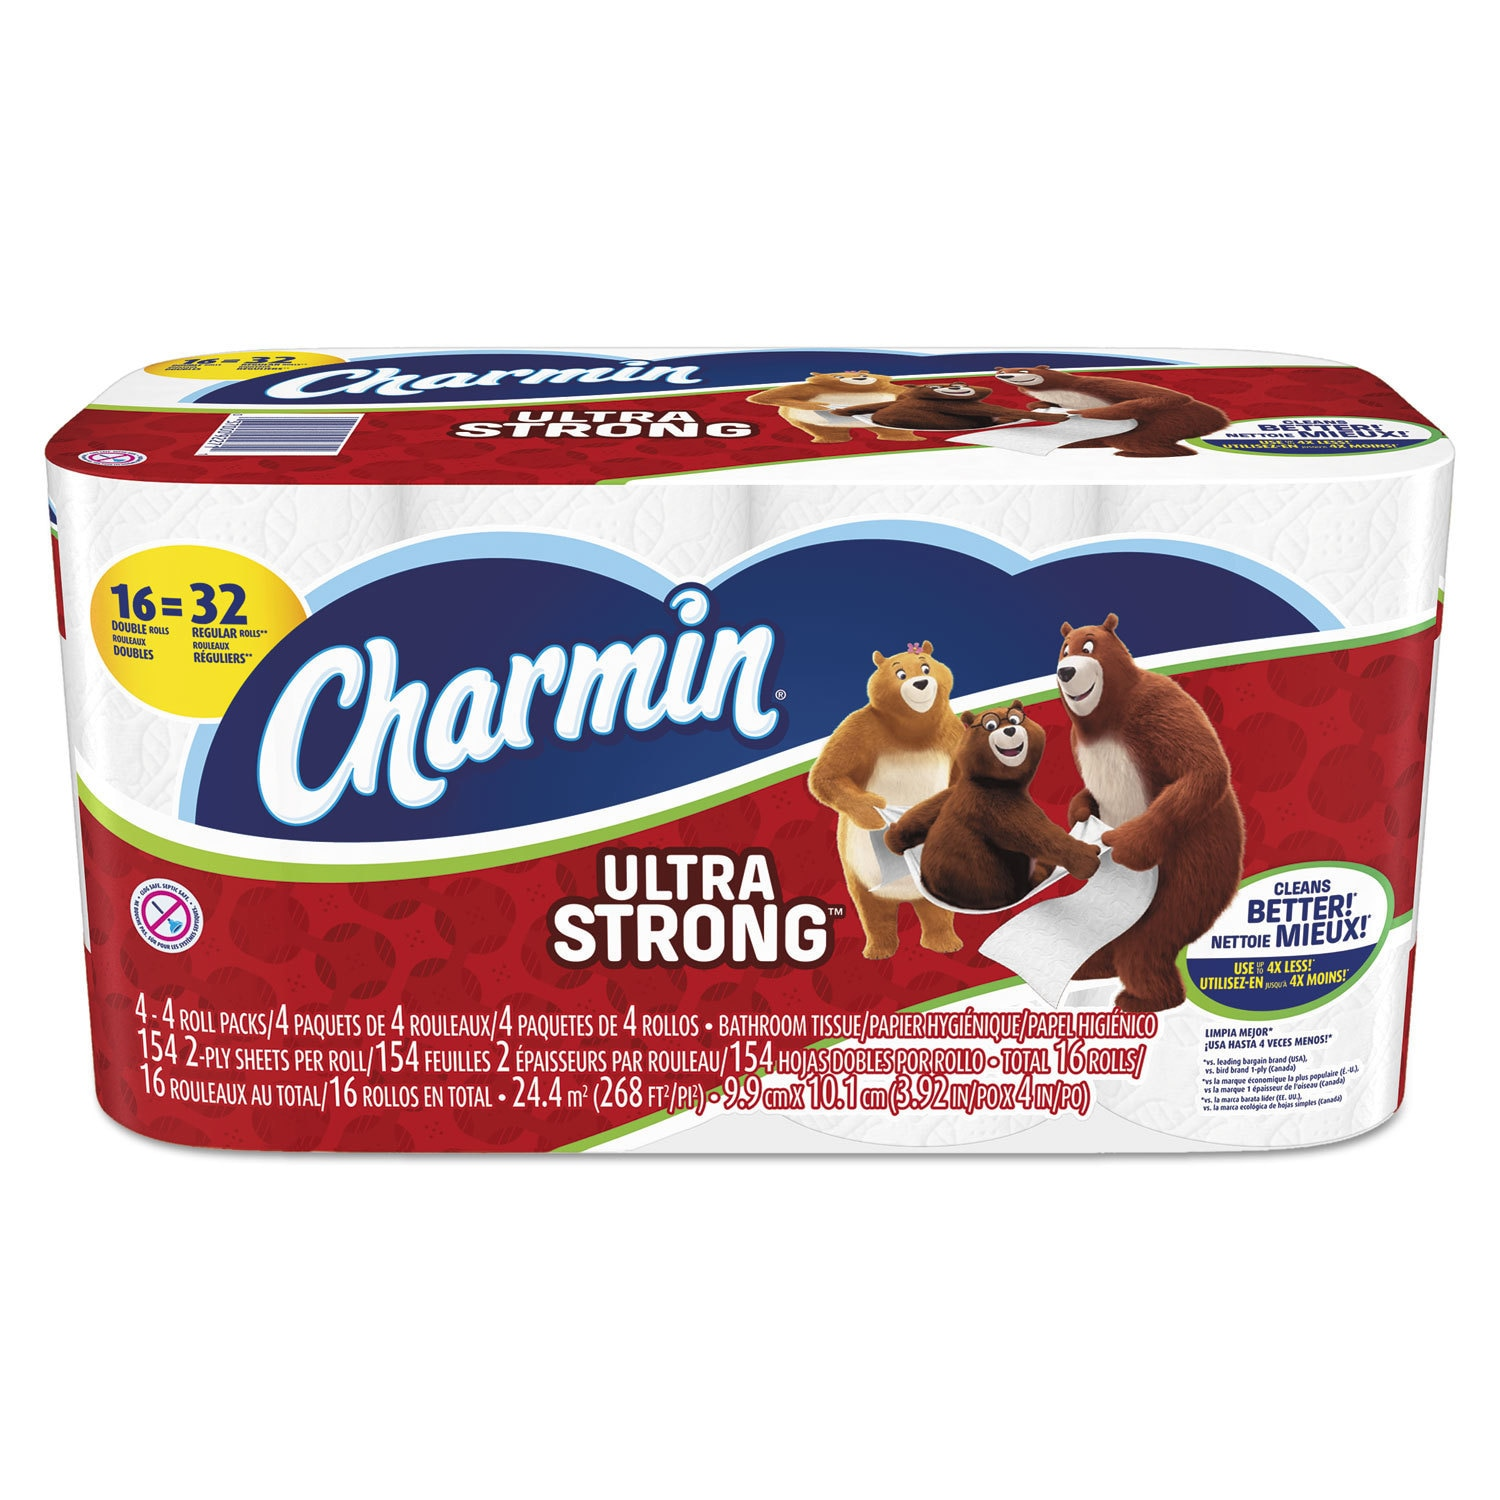 Charmin Ultra Strong Bathroom Tissue 2-Ply White 154 Shee...